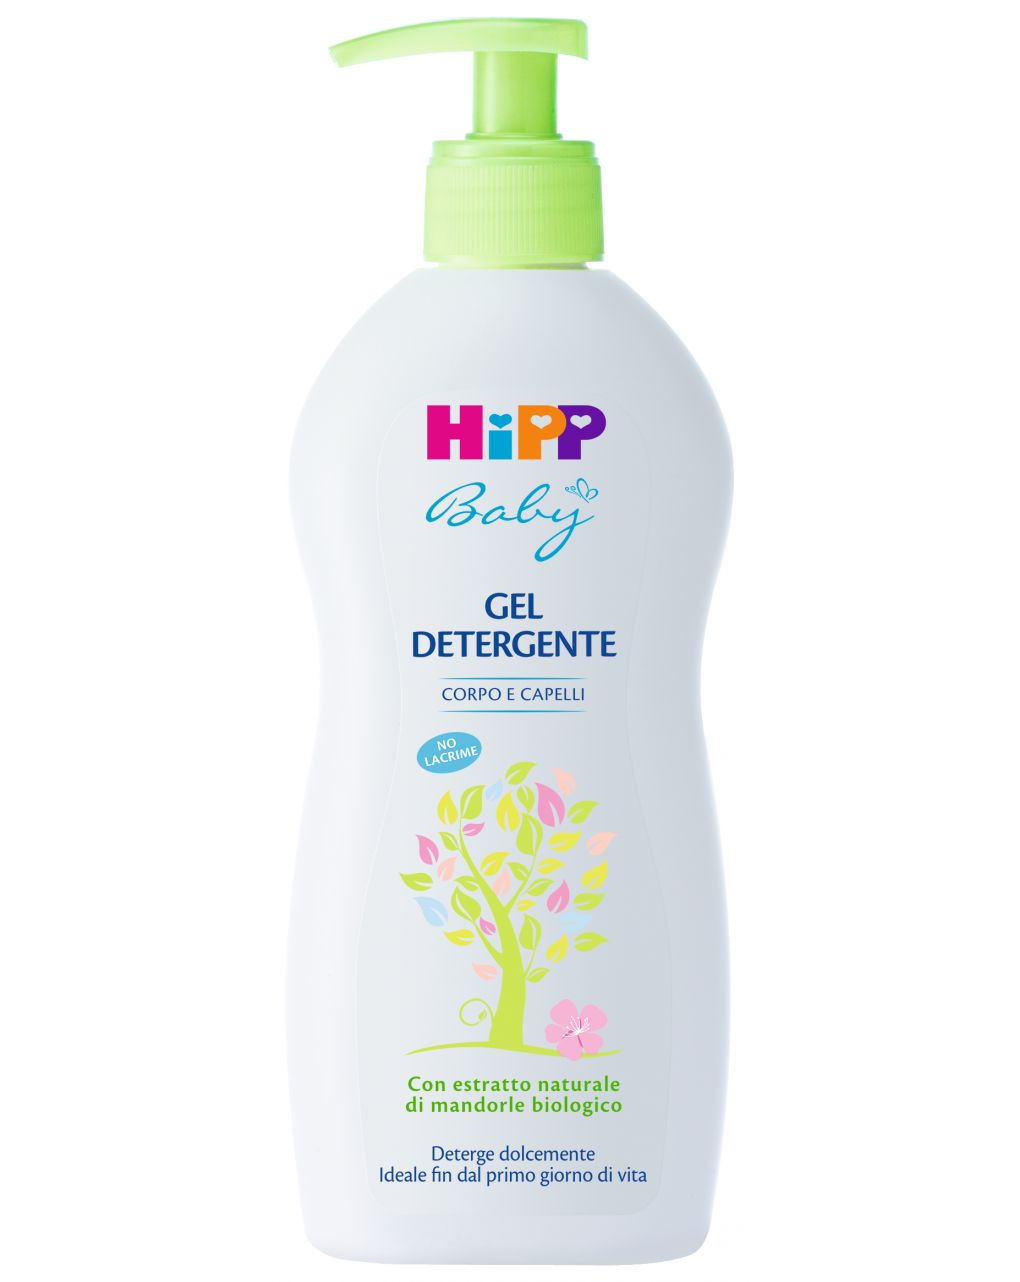 Gel detergente corpo e capelli 400 ml - Hipp